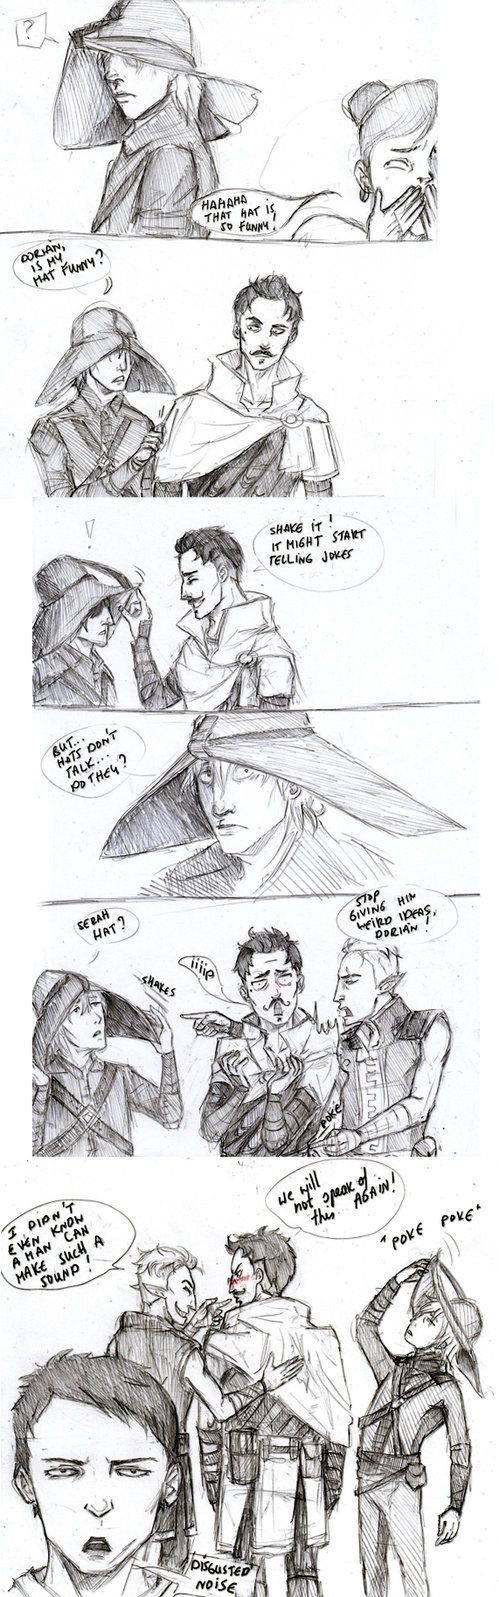 Party Banter by Sanzo-Sinclaire on DeviantArt